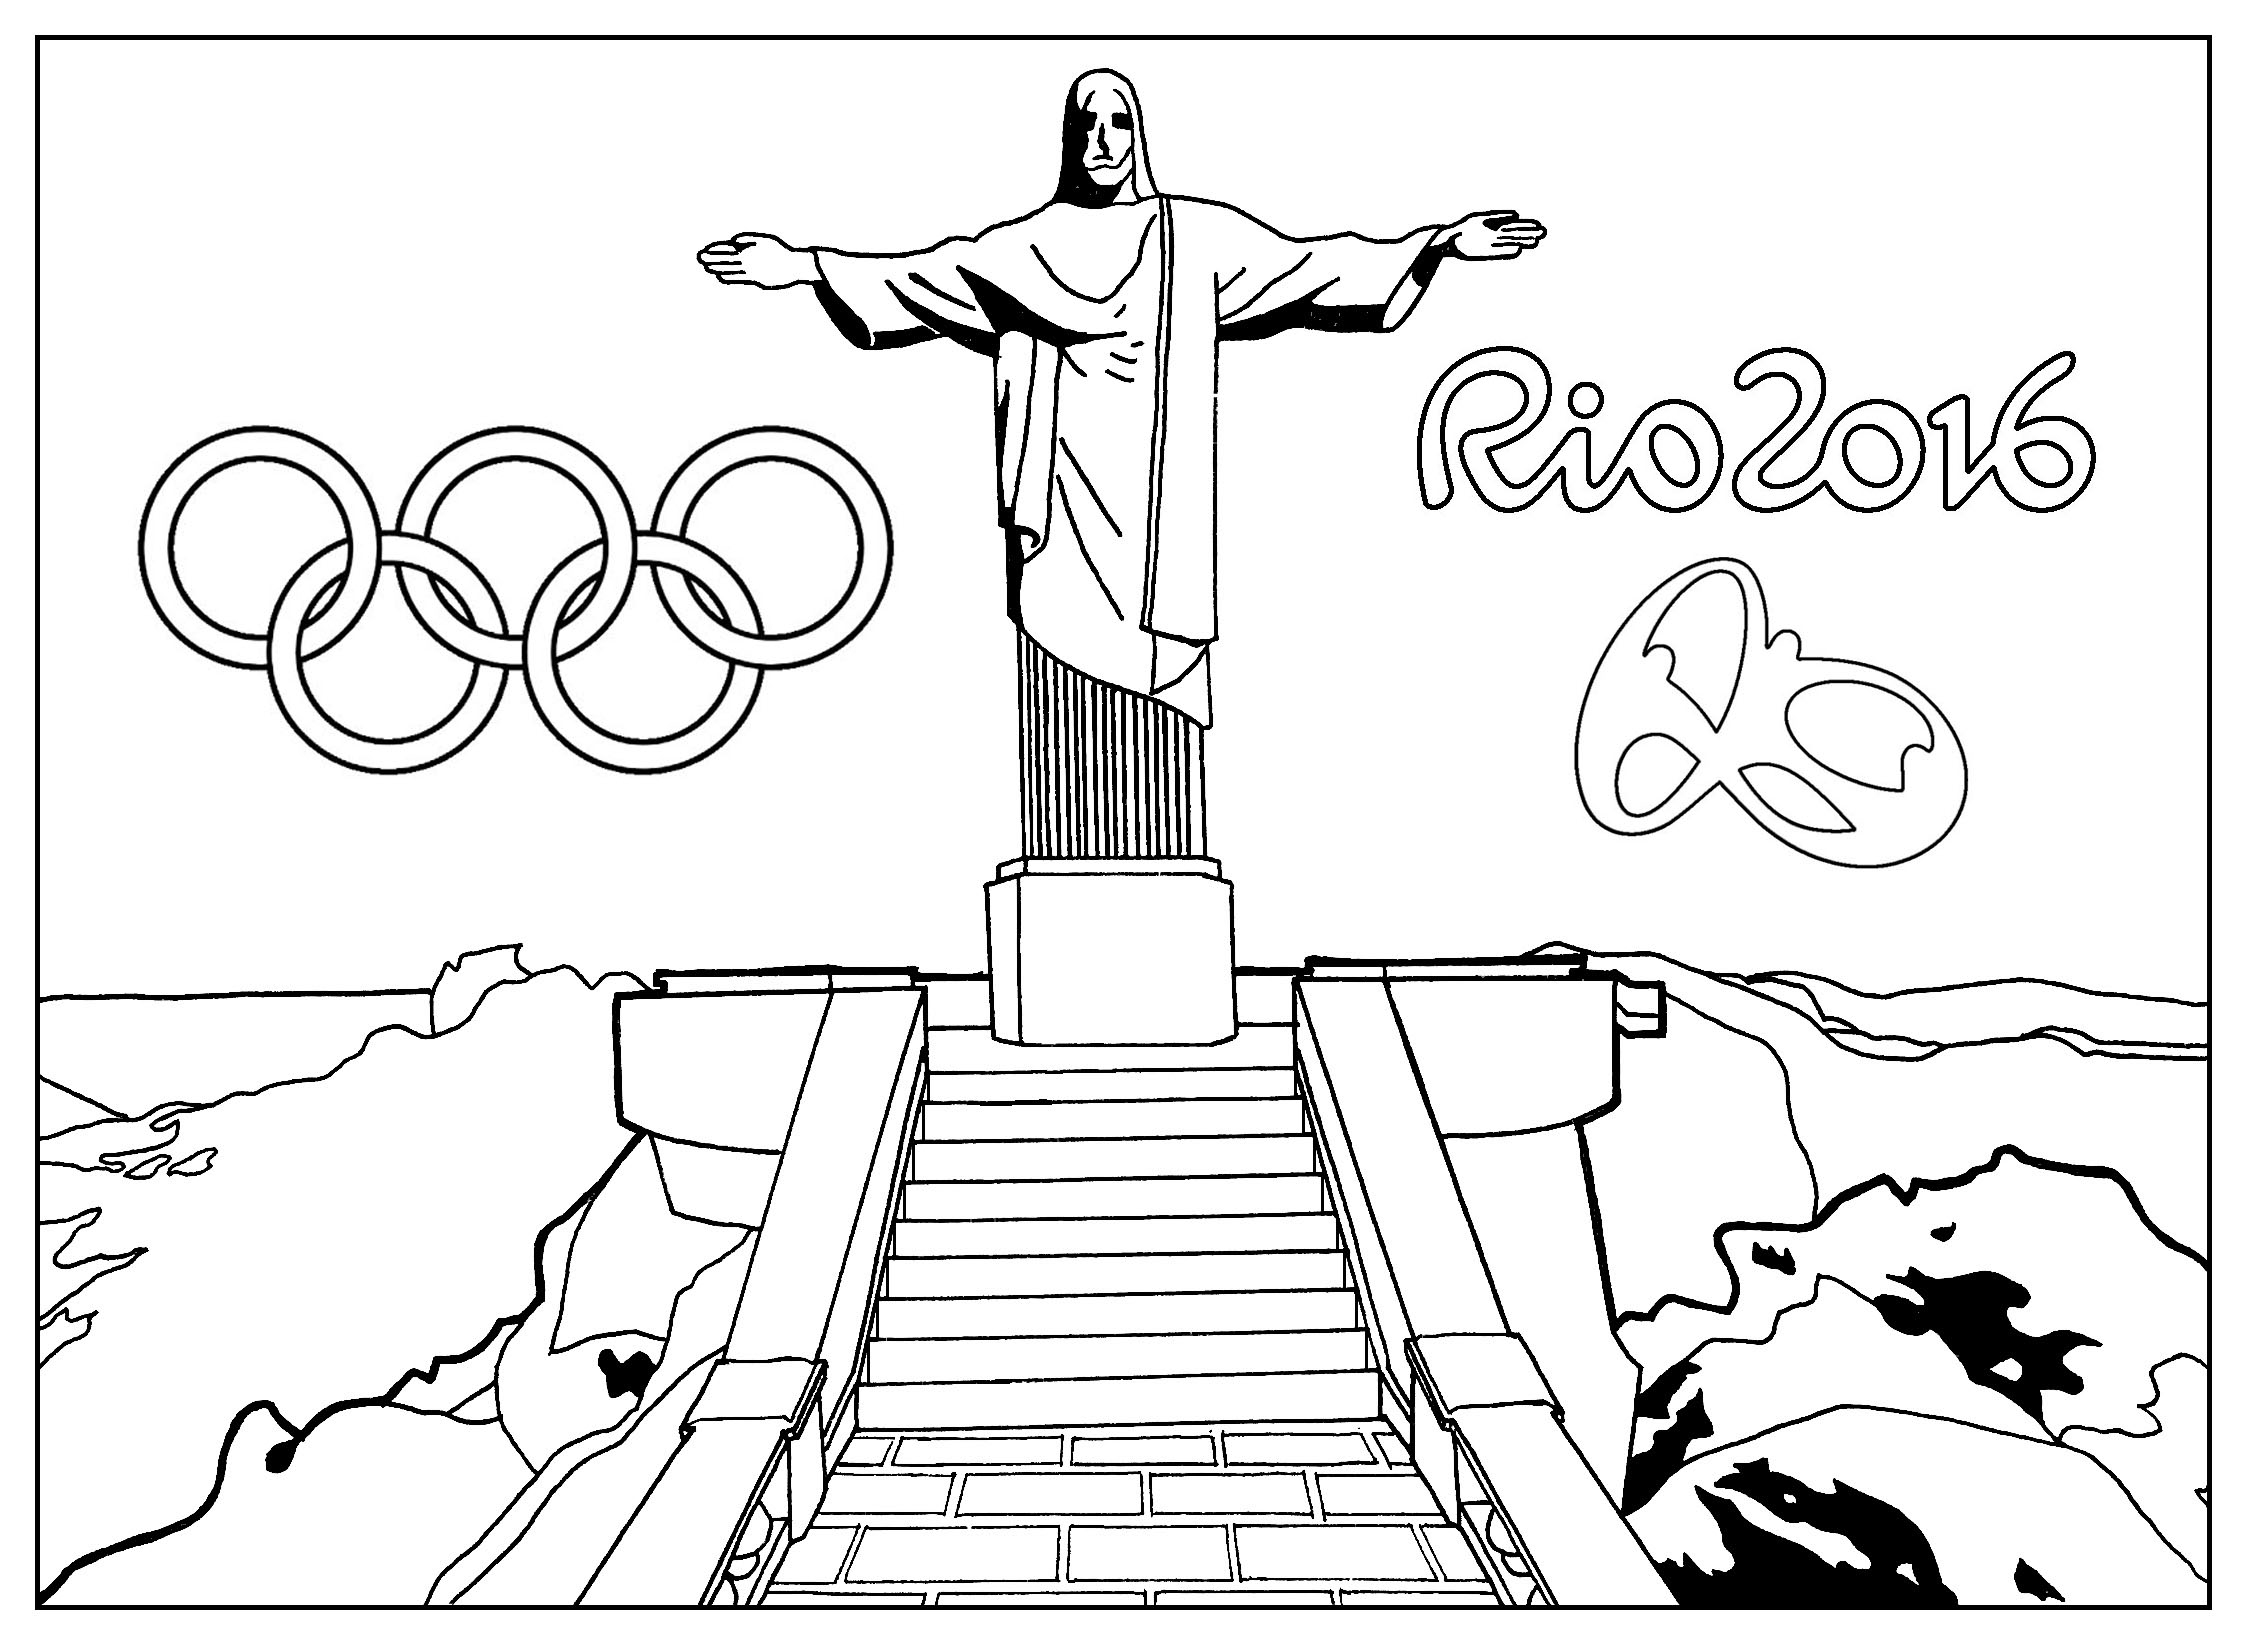 Rio 2016 Olympic Games Christ the Redeemer Statue Olympic & Sport Collection Of Olympic Games Gymnastic Paris 2024 Olympic & Sport Adult to Print